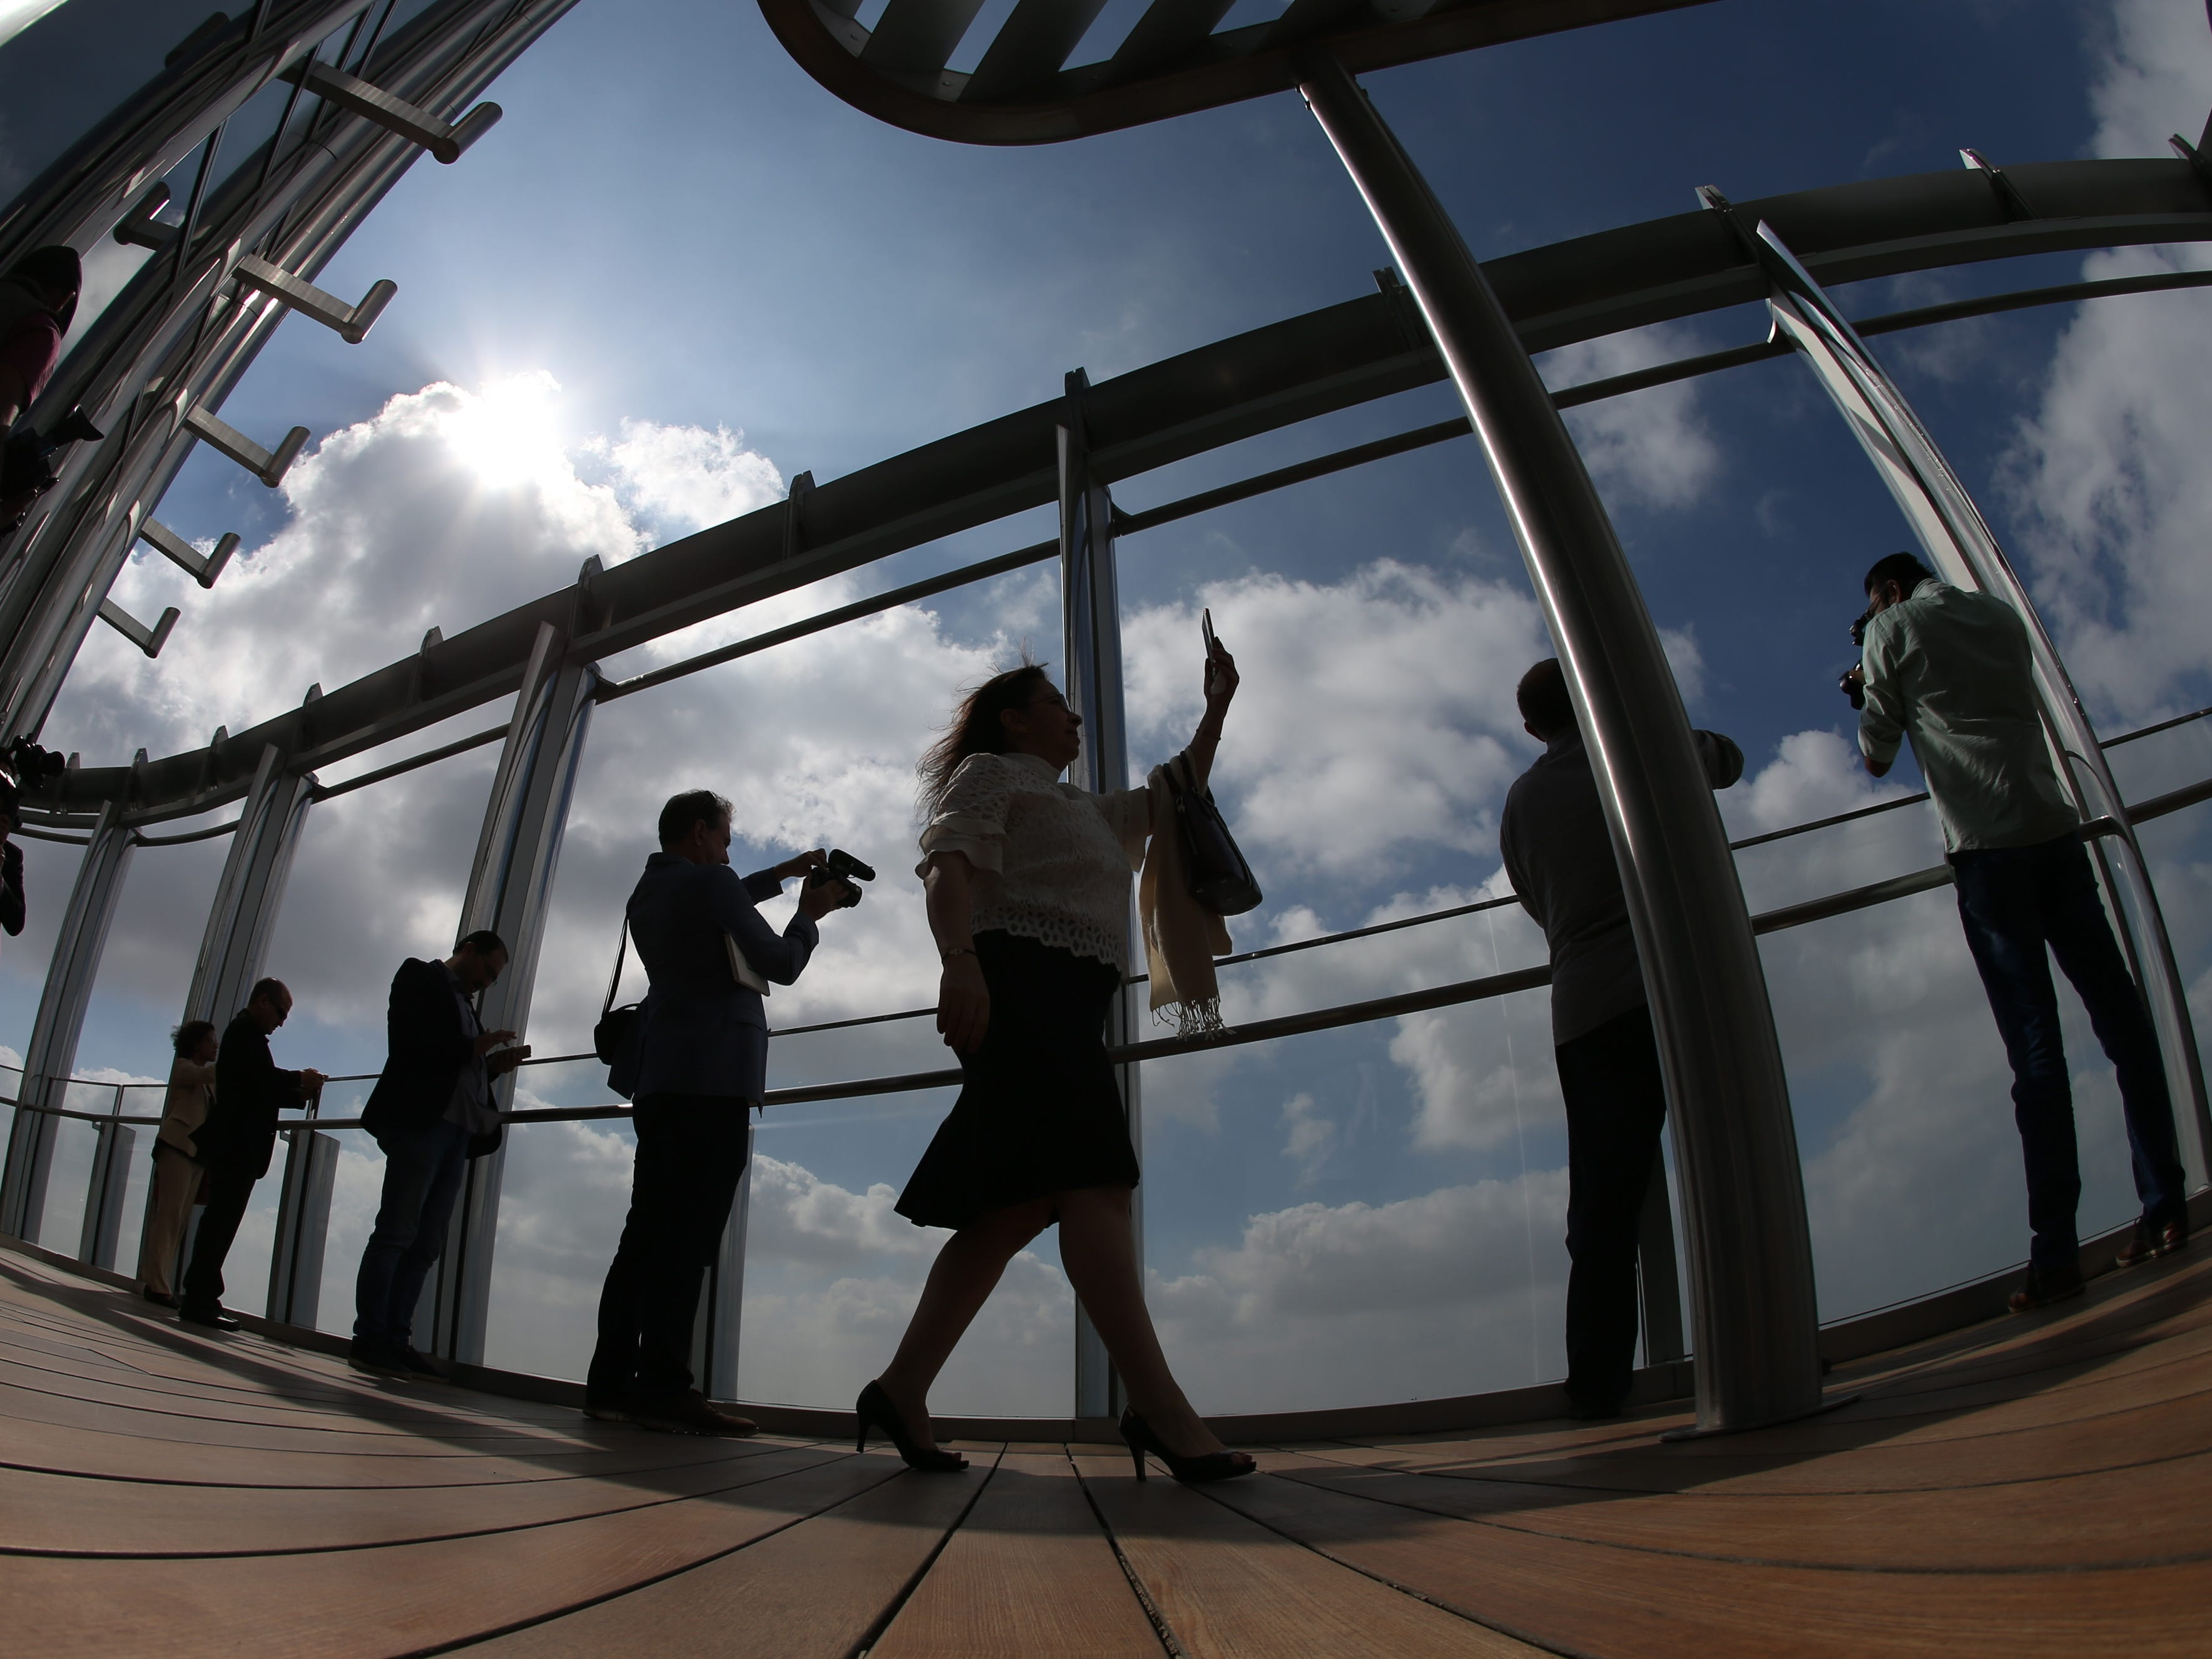 epa07366413 A picture taken with a fish eye lens shows people inspecting the new highest lounge in the world at Burj Khalifa in Dubai, United Arab Emirates, 13 February 2019. Ahmad Al Falasi, Executive Director Emaar Properties announced during media briefing the opening of highest lounge in the world at Burj Khalifa which is located at 152, 153 and 154 floor which have distinctive settings each assuring never before seen views of the city.  EPA-EFE/ALI HAIDER ORG XMIT: XAH001